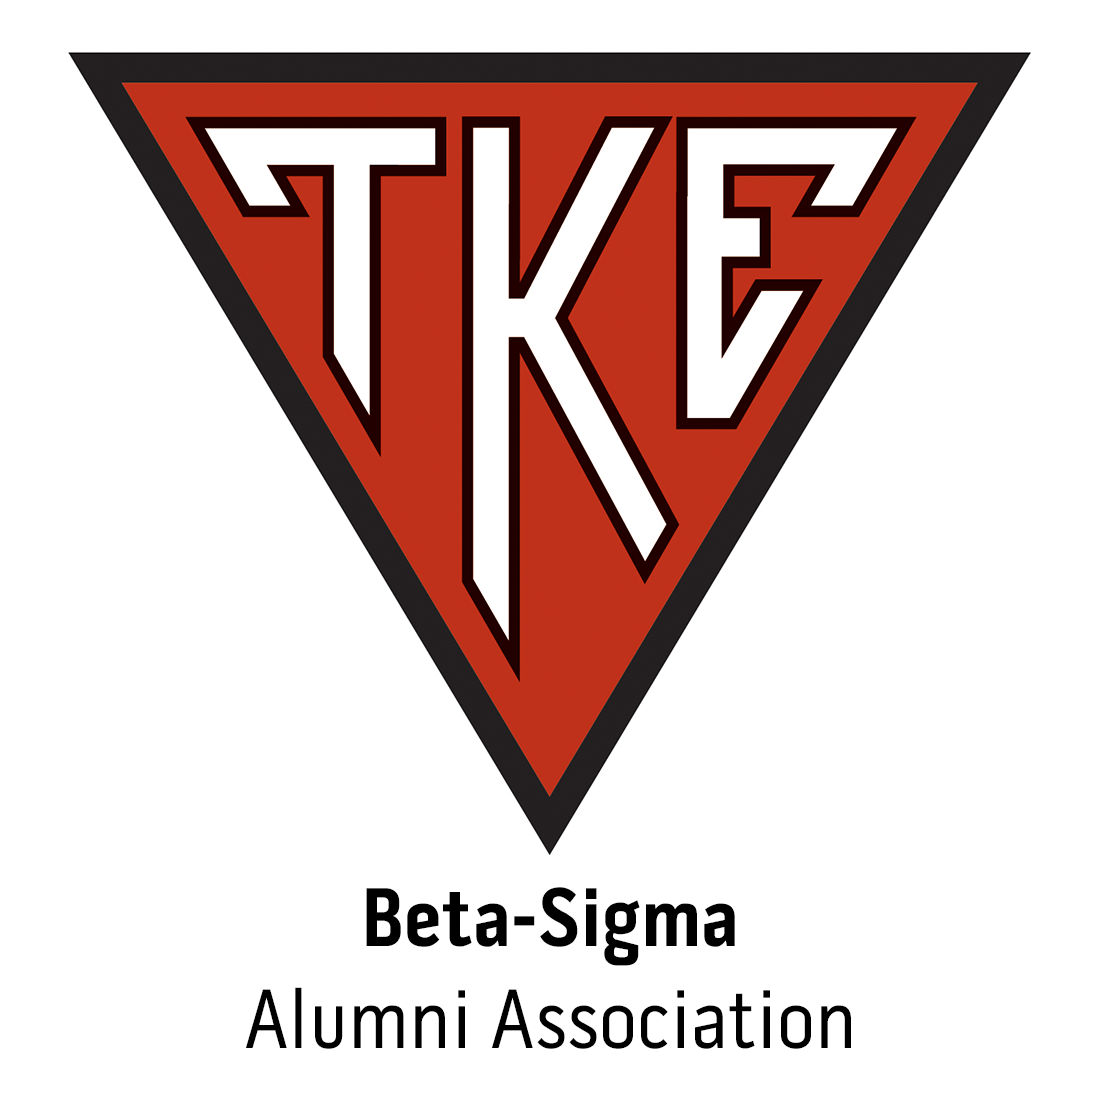 Beta-Sigma Alumni Association at University of Southern California